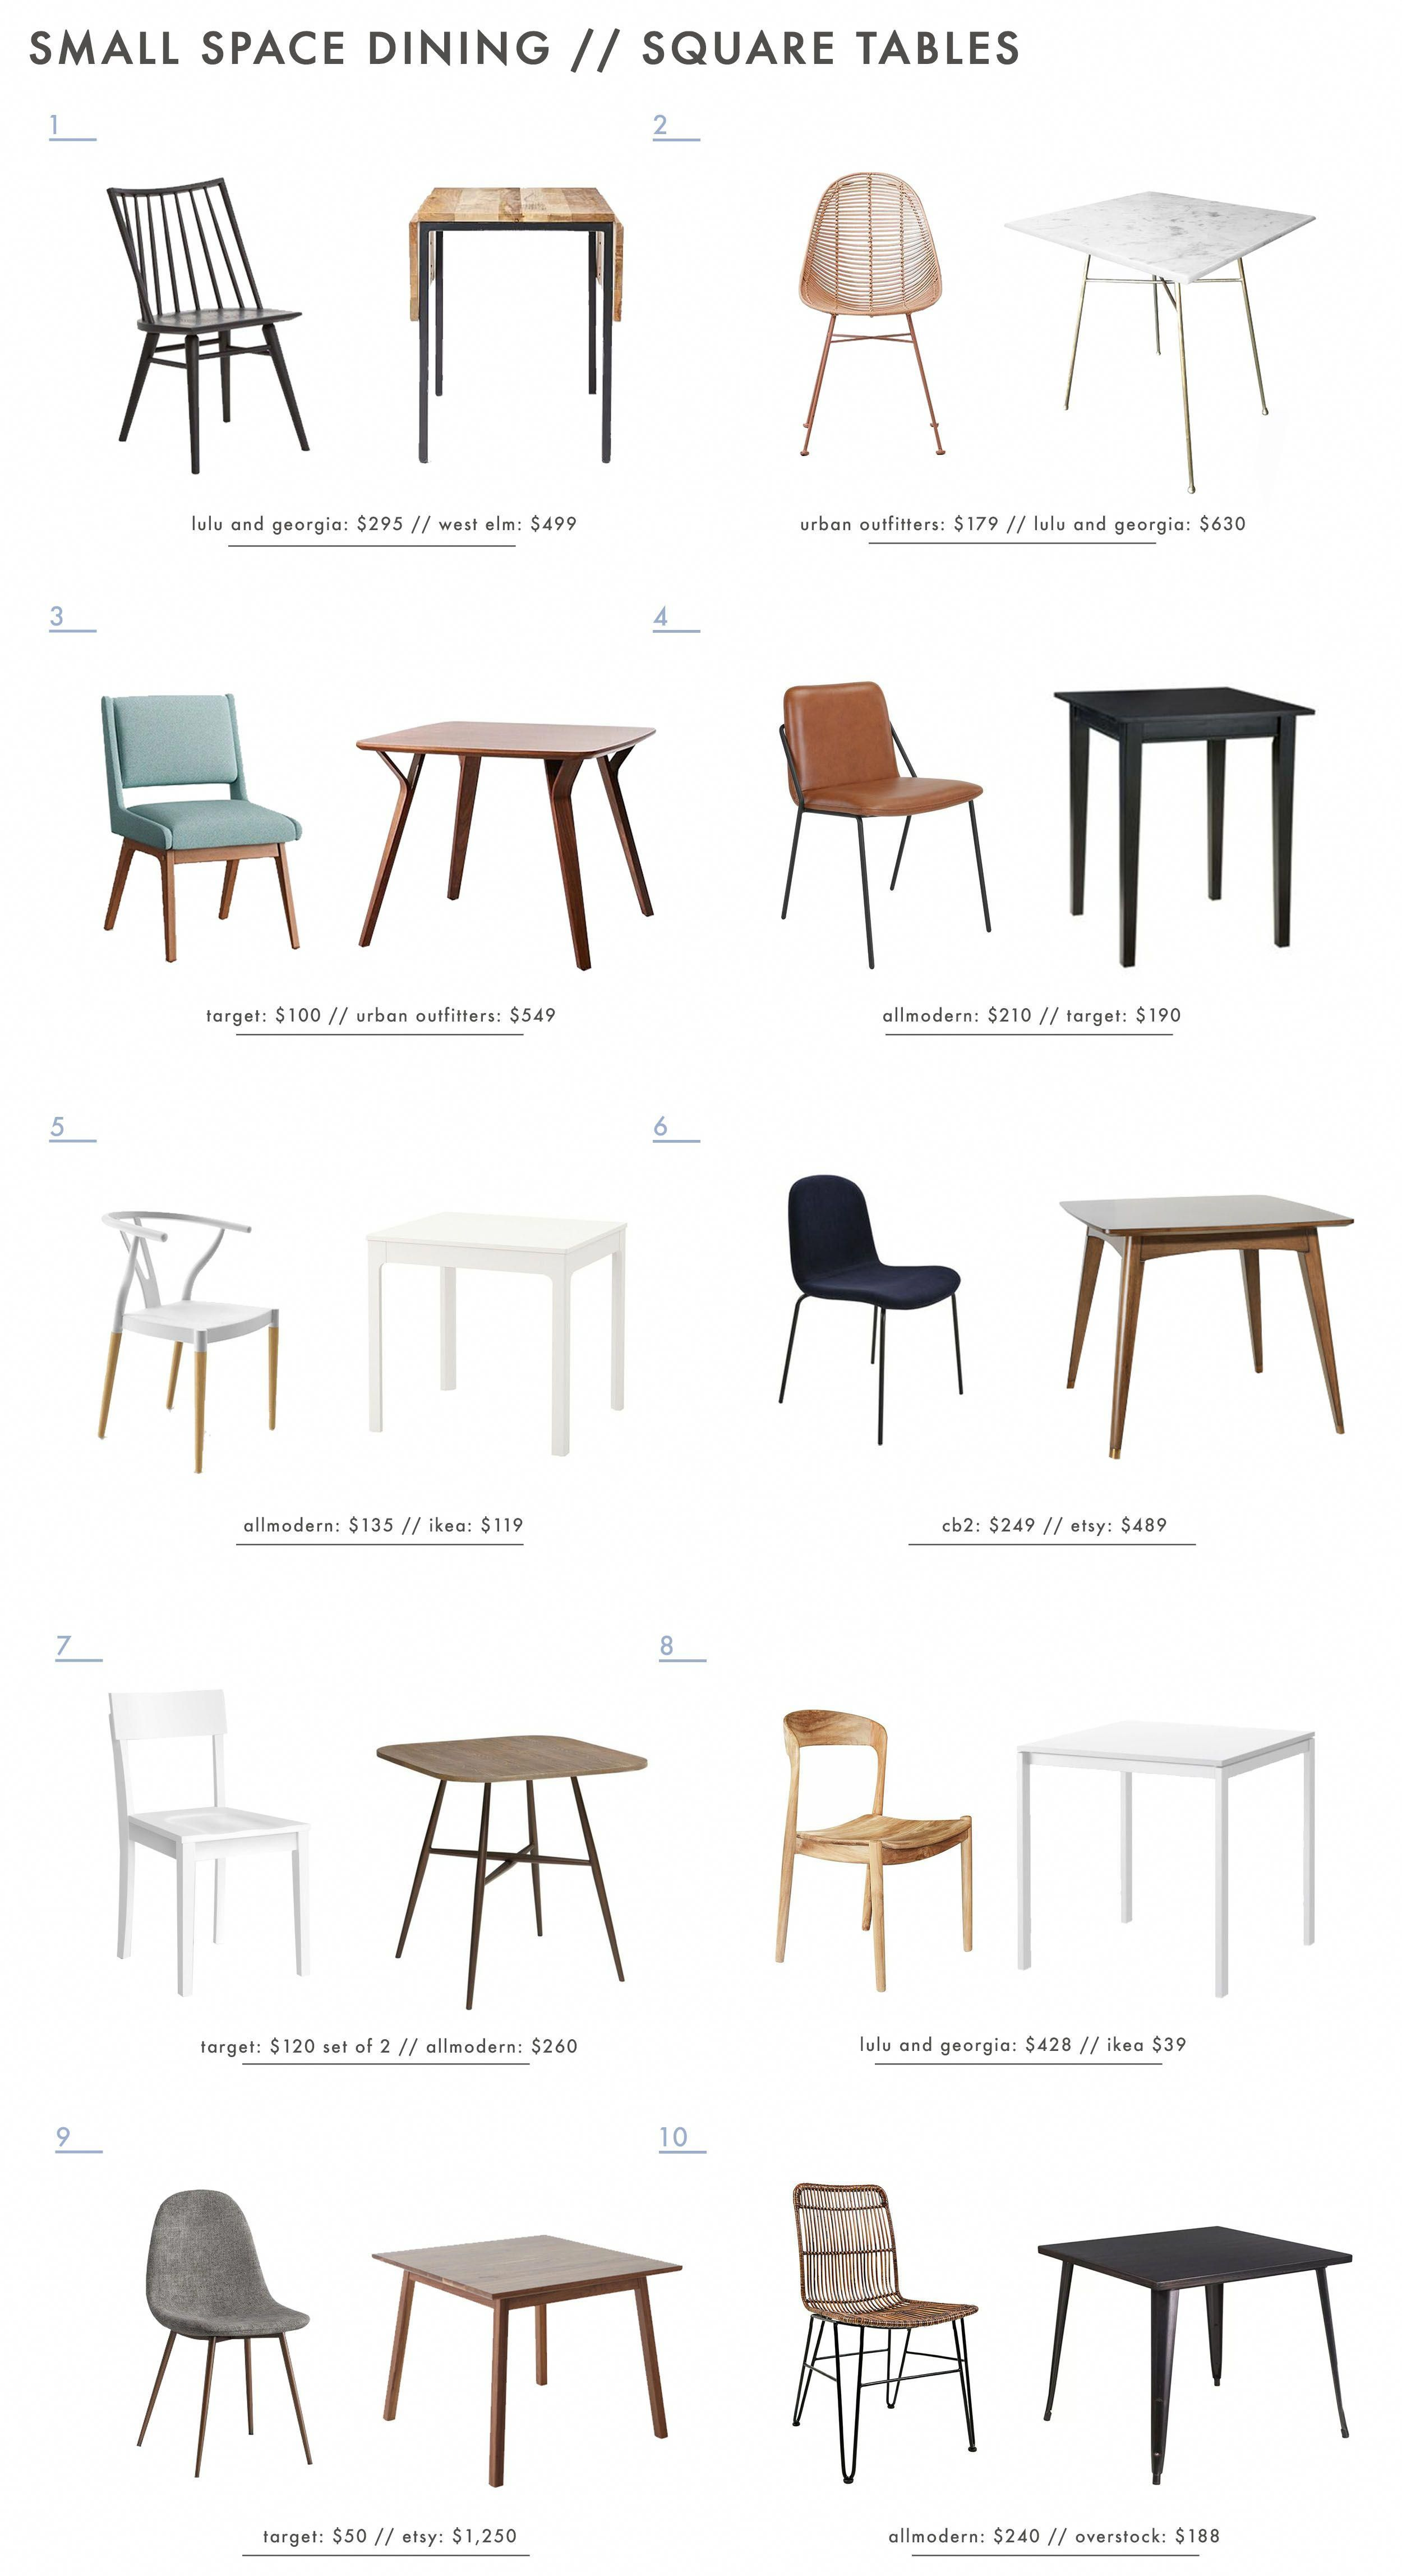 The Best Square Dining Table Chair Combos For Small Dining Spaces